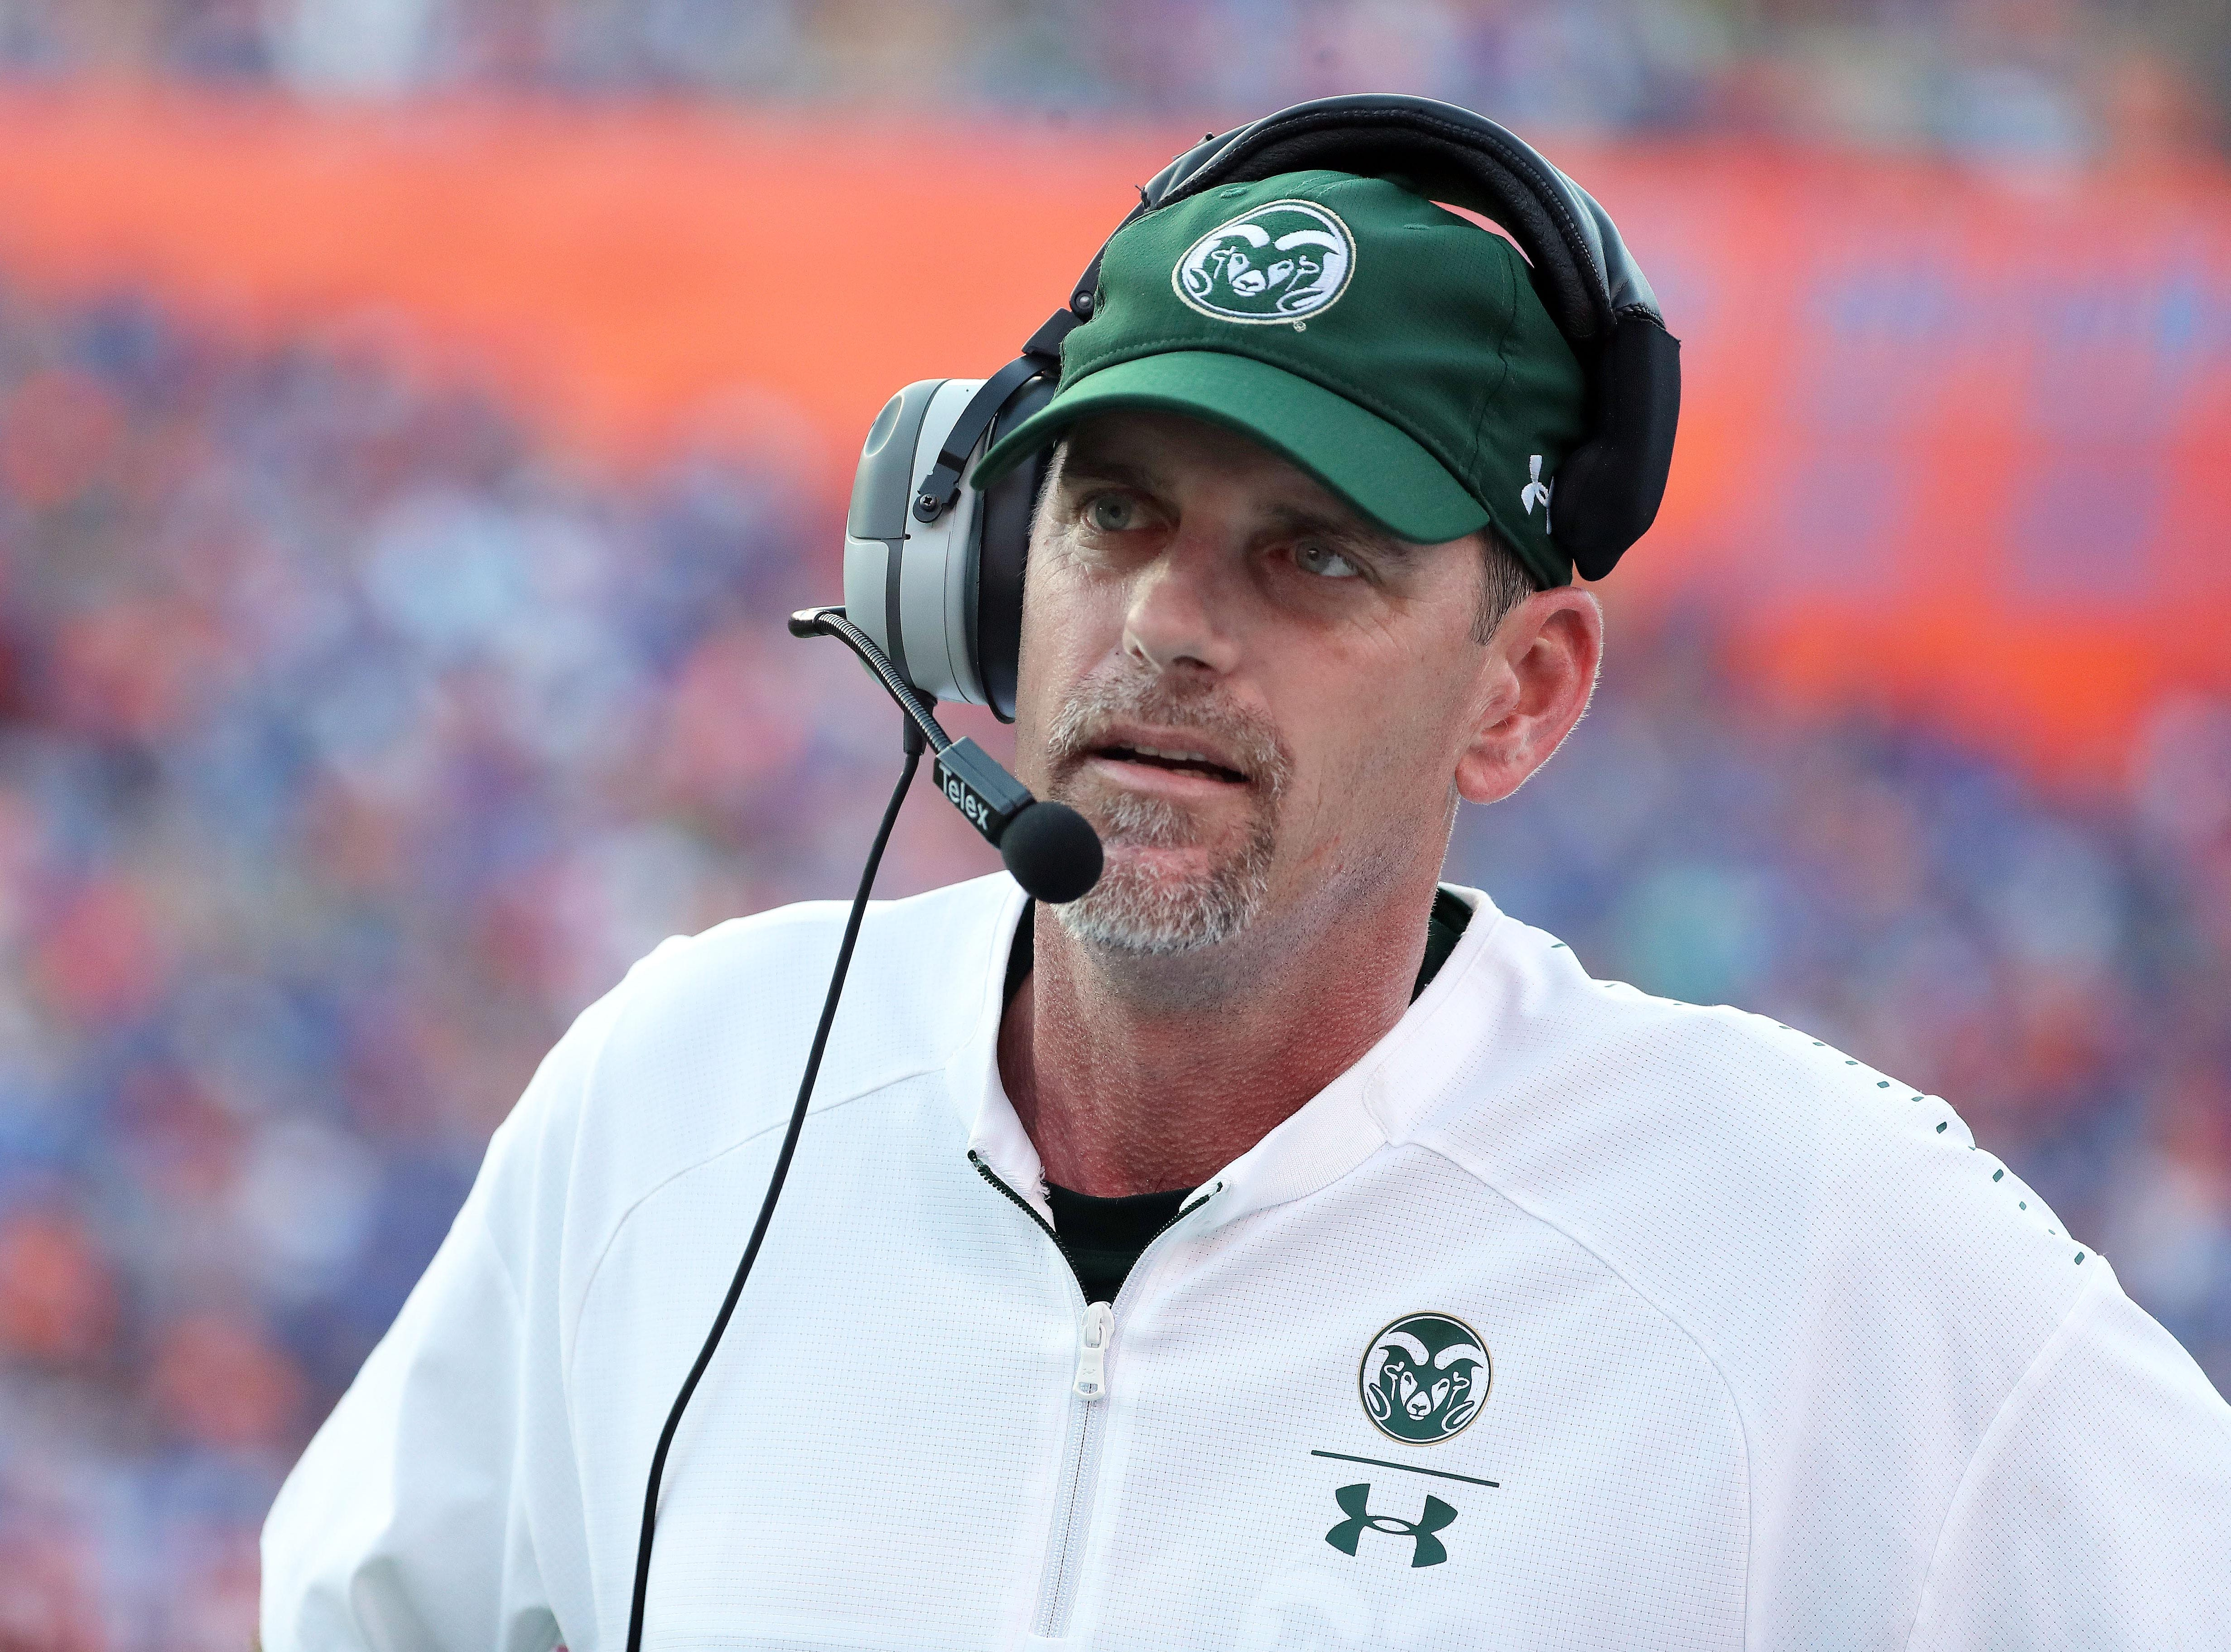 Sep 15, 2018; Gainesville, FL, USA; Colorado State Rams head coach Mike Bobo reacts against the Florida Gators during the second half at Ben Hill Griffin Stadium. Mandatory Credit: Kim Klement-USA TODAY Sports